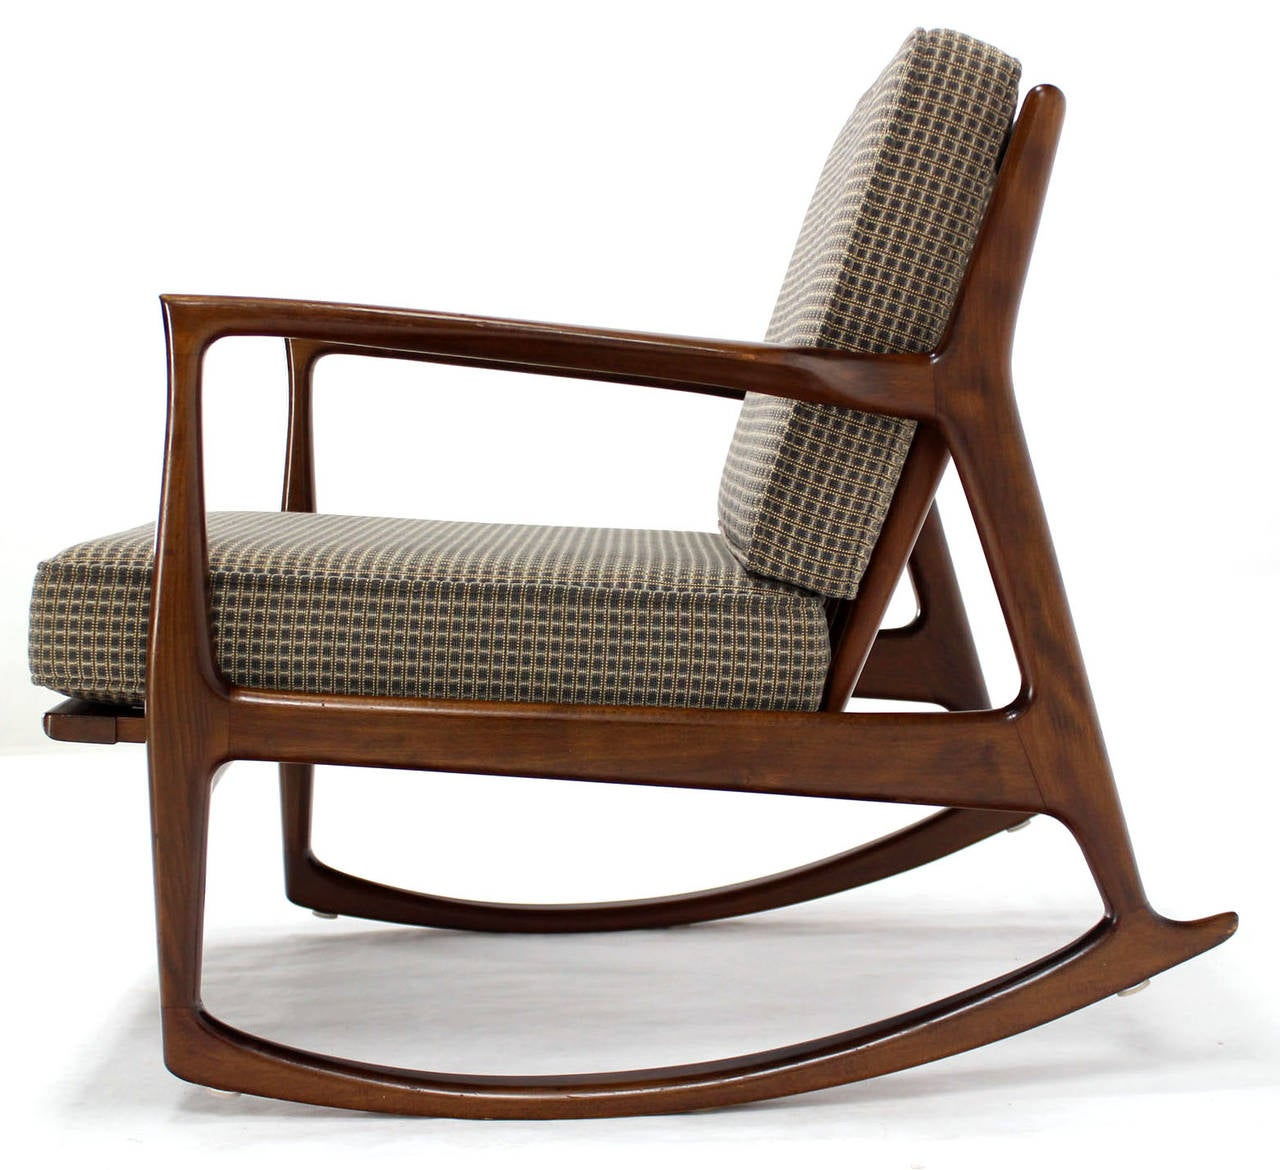 mid century rocking chair Danish Modern Mid Century Rocking Chair by Selig at 1stdibs mid century rocking chair